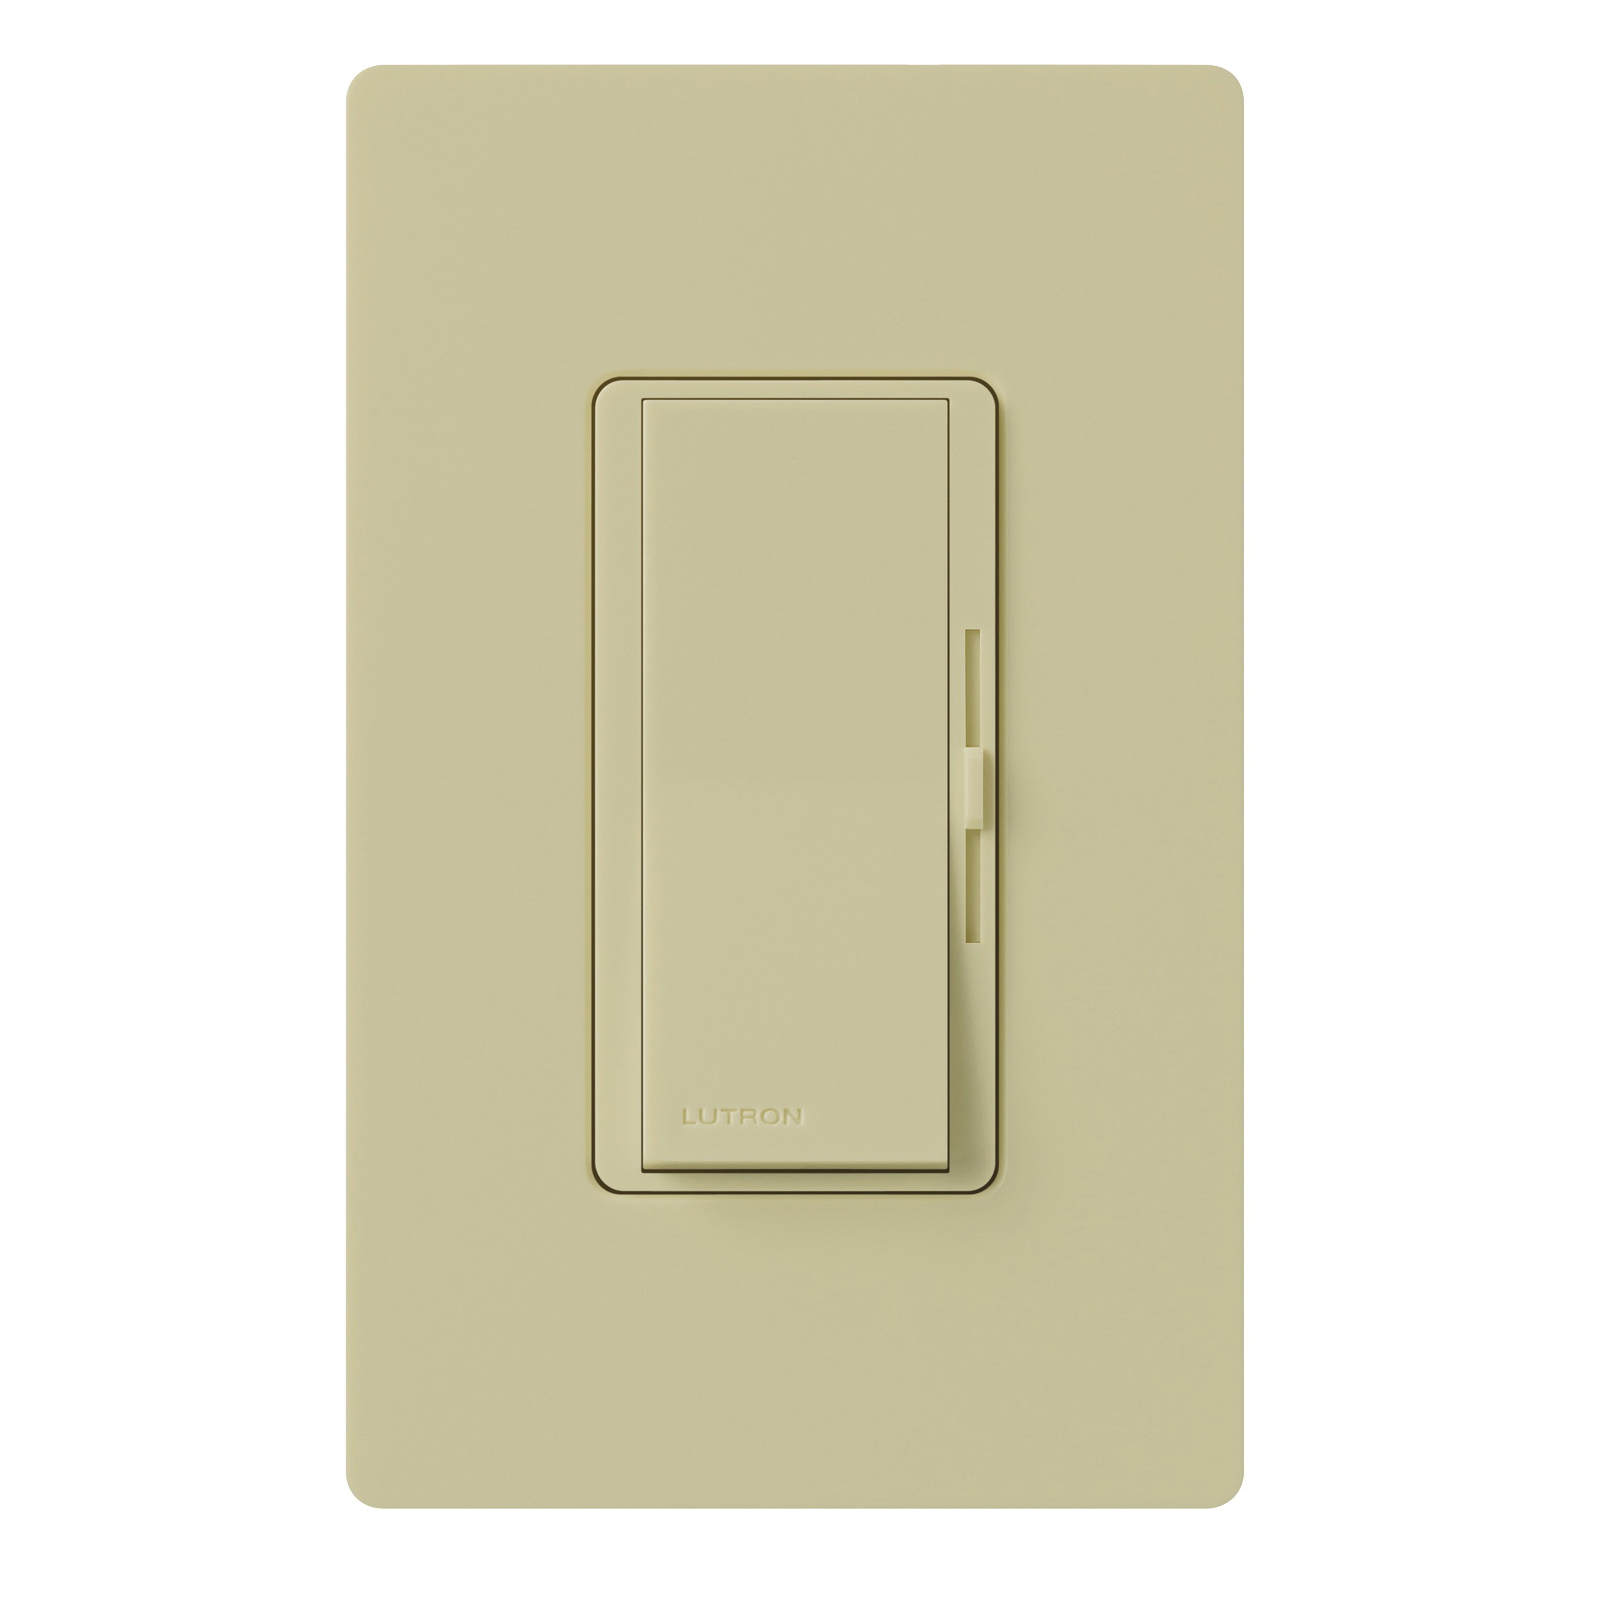 Picture of Lutron Diva DVWCL-153PH-IV C.L Dimmer with Wallplate, 1.25 A, 120 V, 150 W, CFL, Halogen, Incandescent, LED Lamp